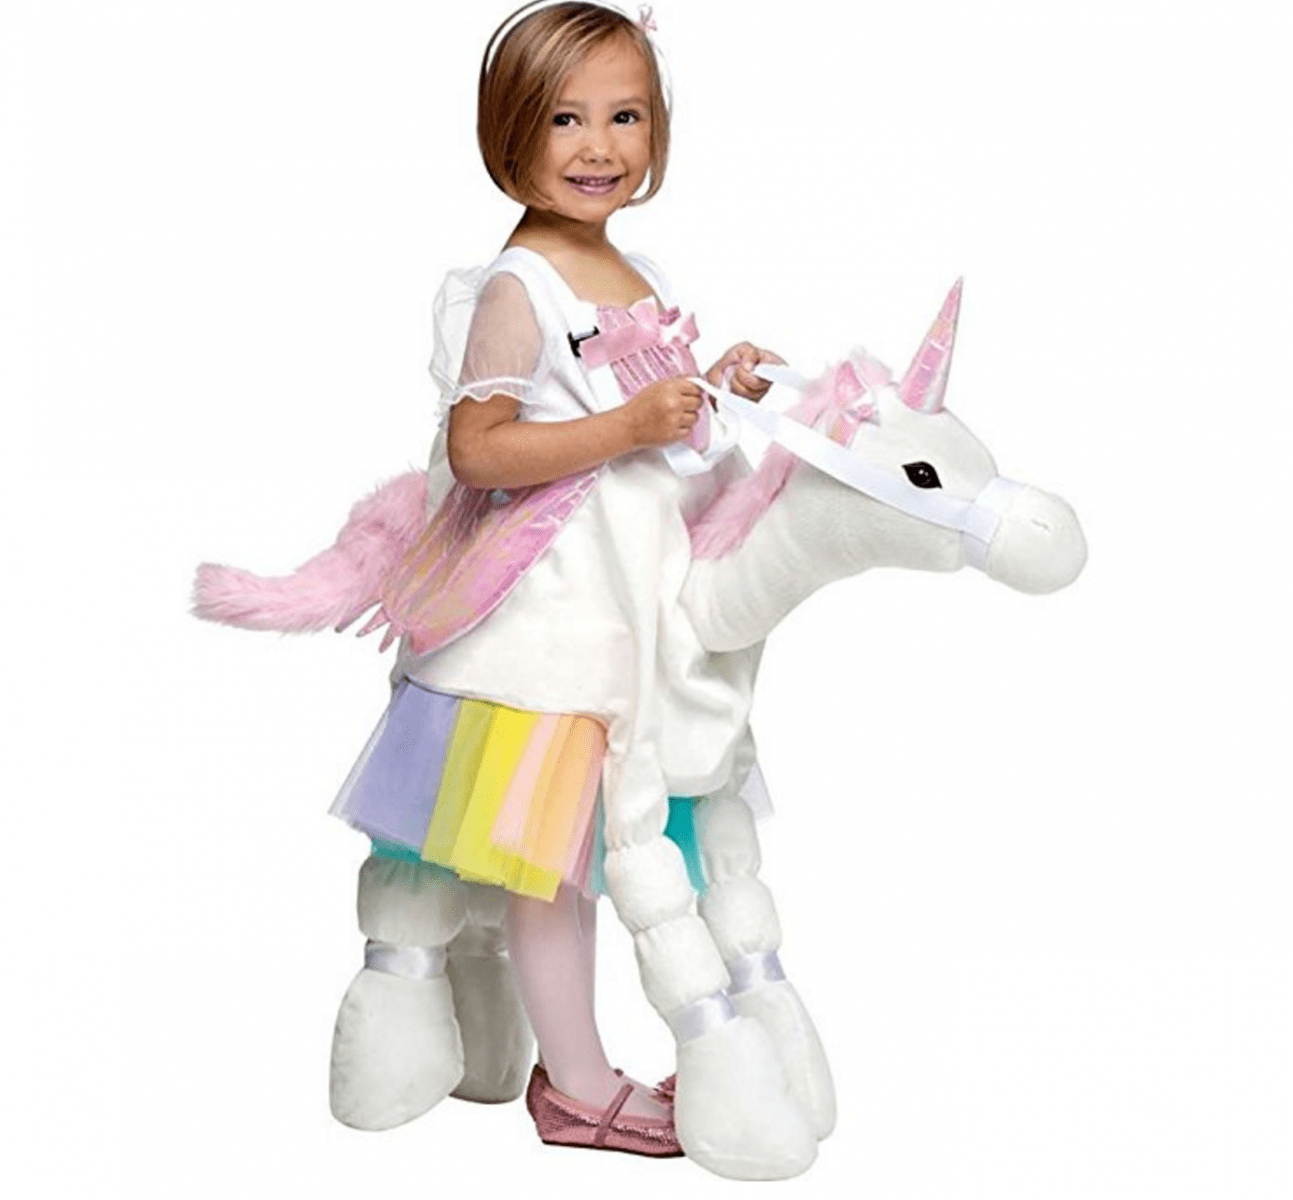 c528363dd3e8 Plush Ride-On Unicorn Costume Kids love getting a ride and this is one  magical animal they'll happily hop on to. Bonus is that after all that  trick or ...